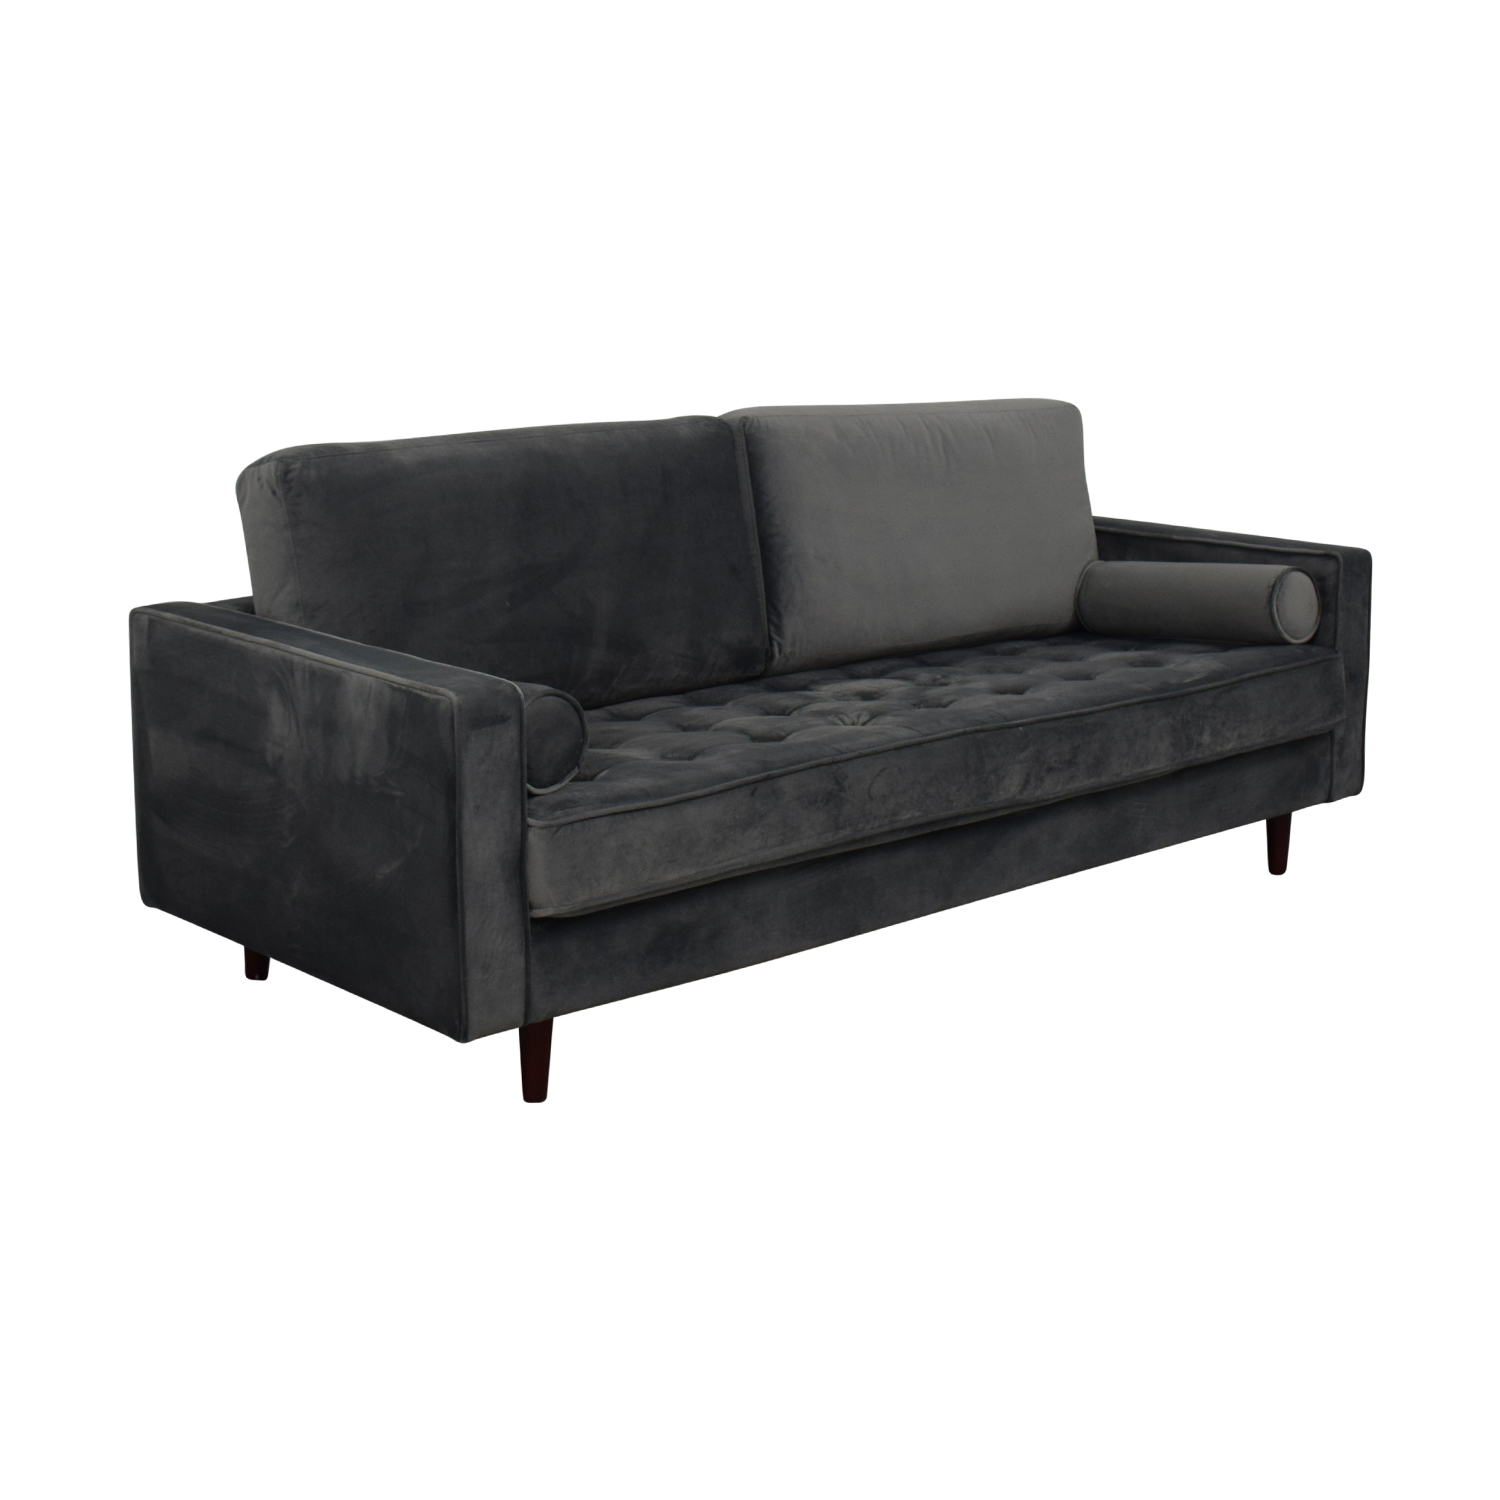 Mistana Mistana Derry Sofa used